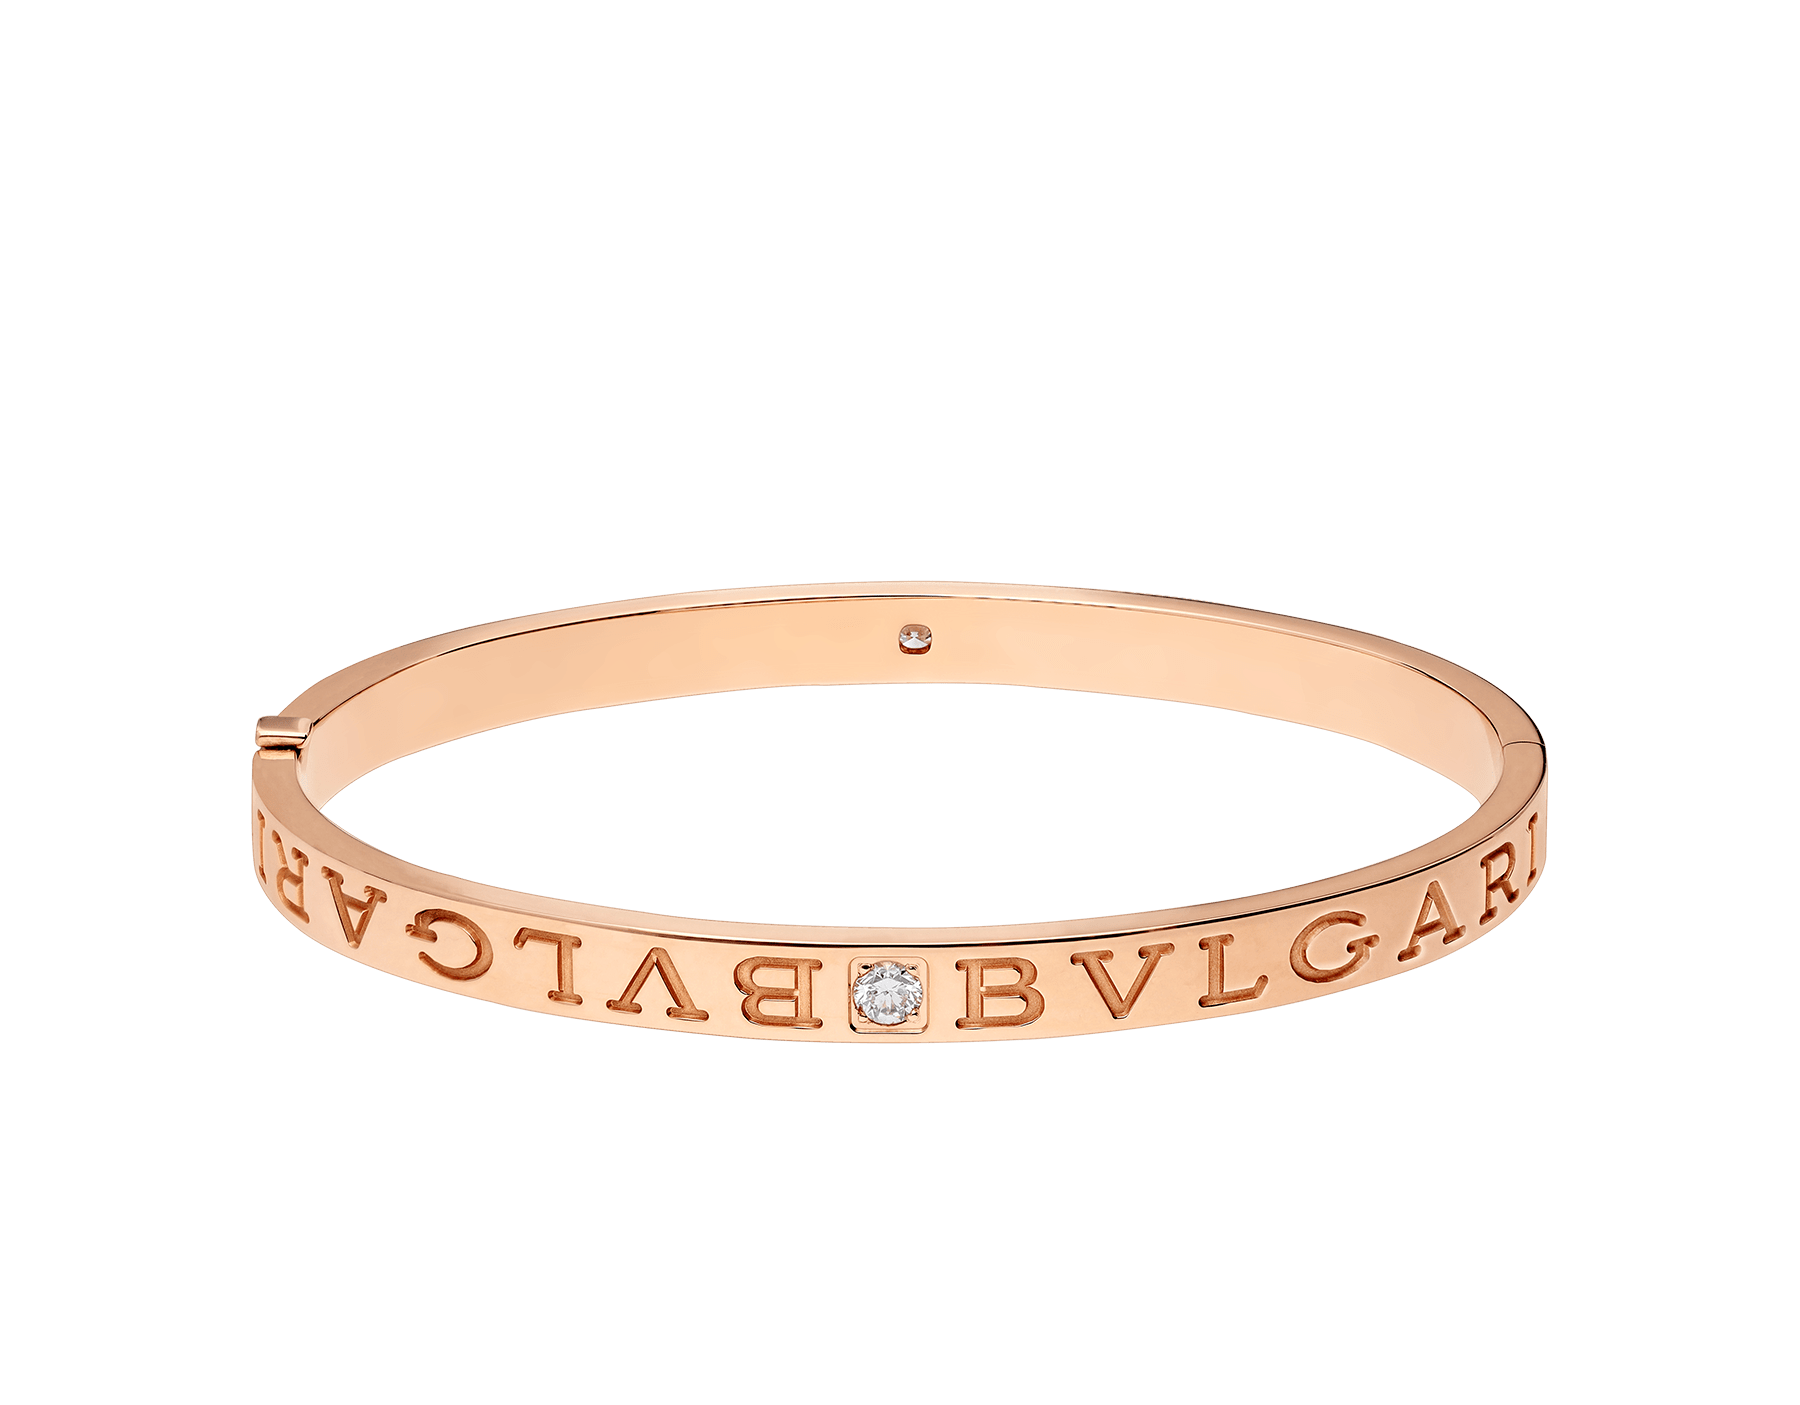 BVLGARI BVLGARI 18 kt rose gold bangle bracelet set with diamonds BR856760 image 2